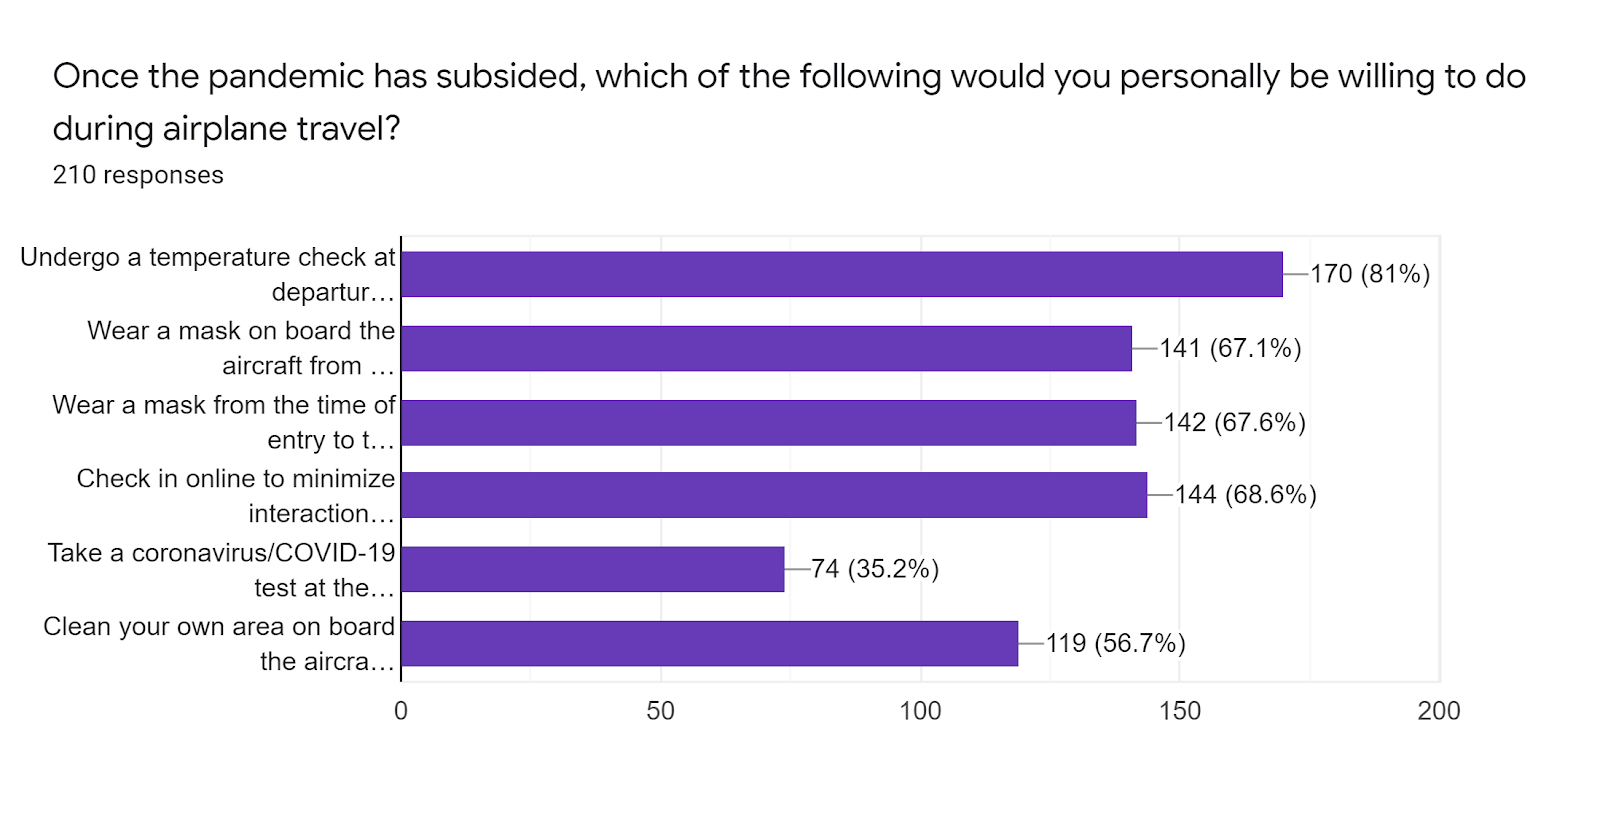 Forms response chart. Question title: Once the pandemic has subsided, which of the following would you personally be willing to do during airplane travel?. Number of responses: 210 responses.